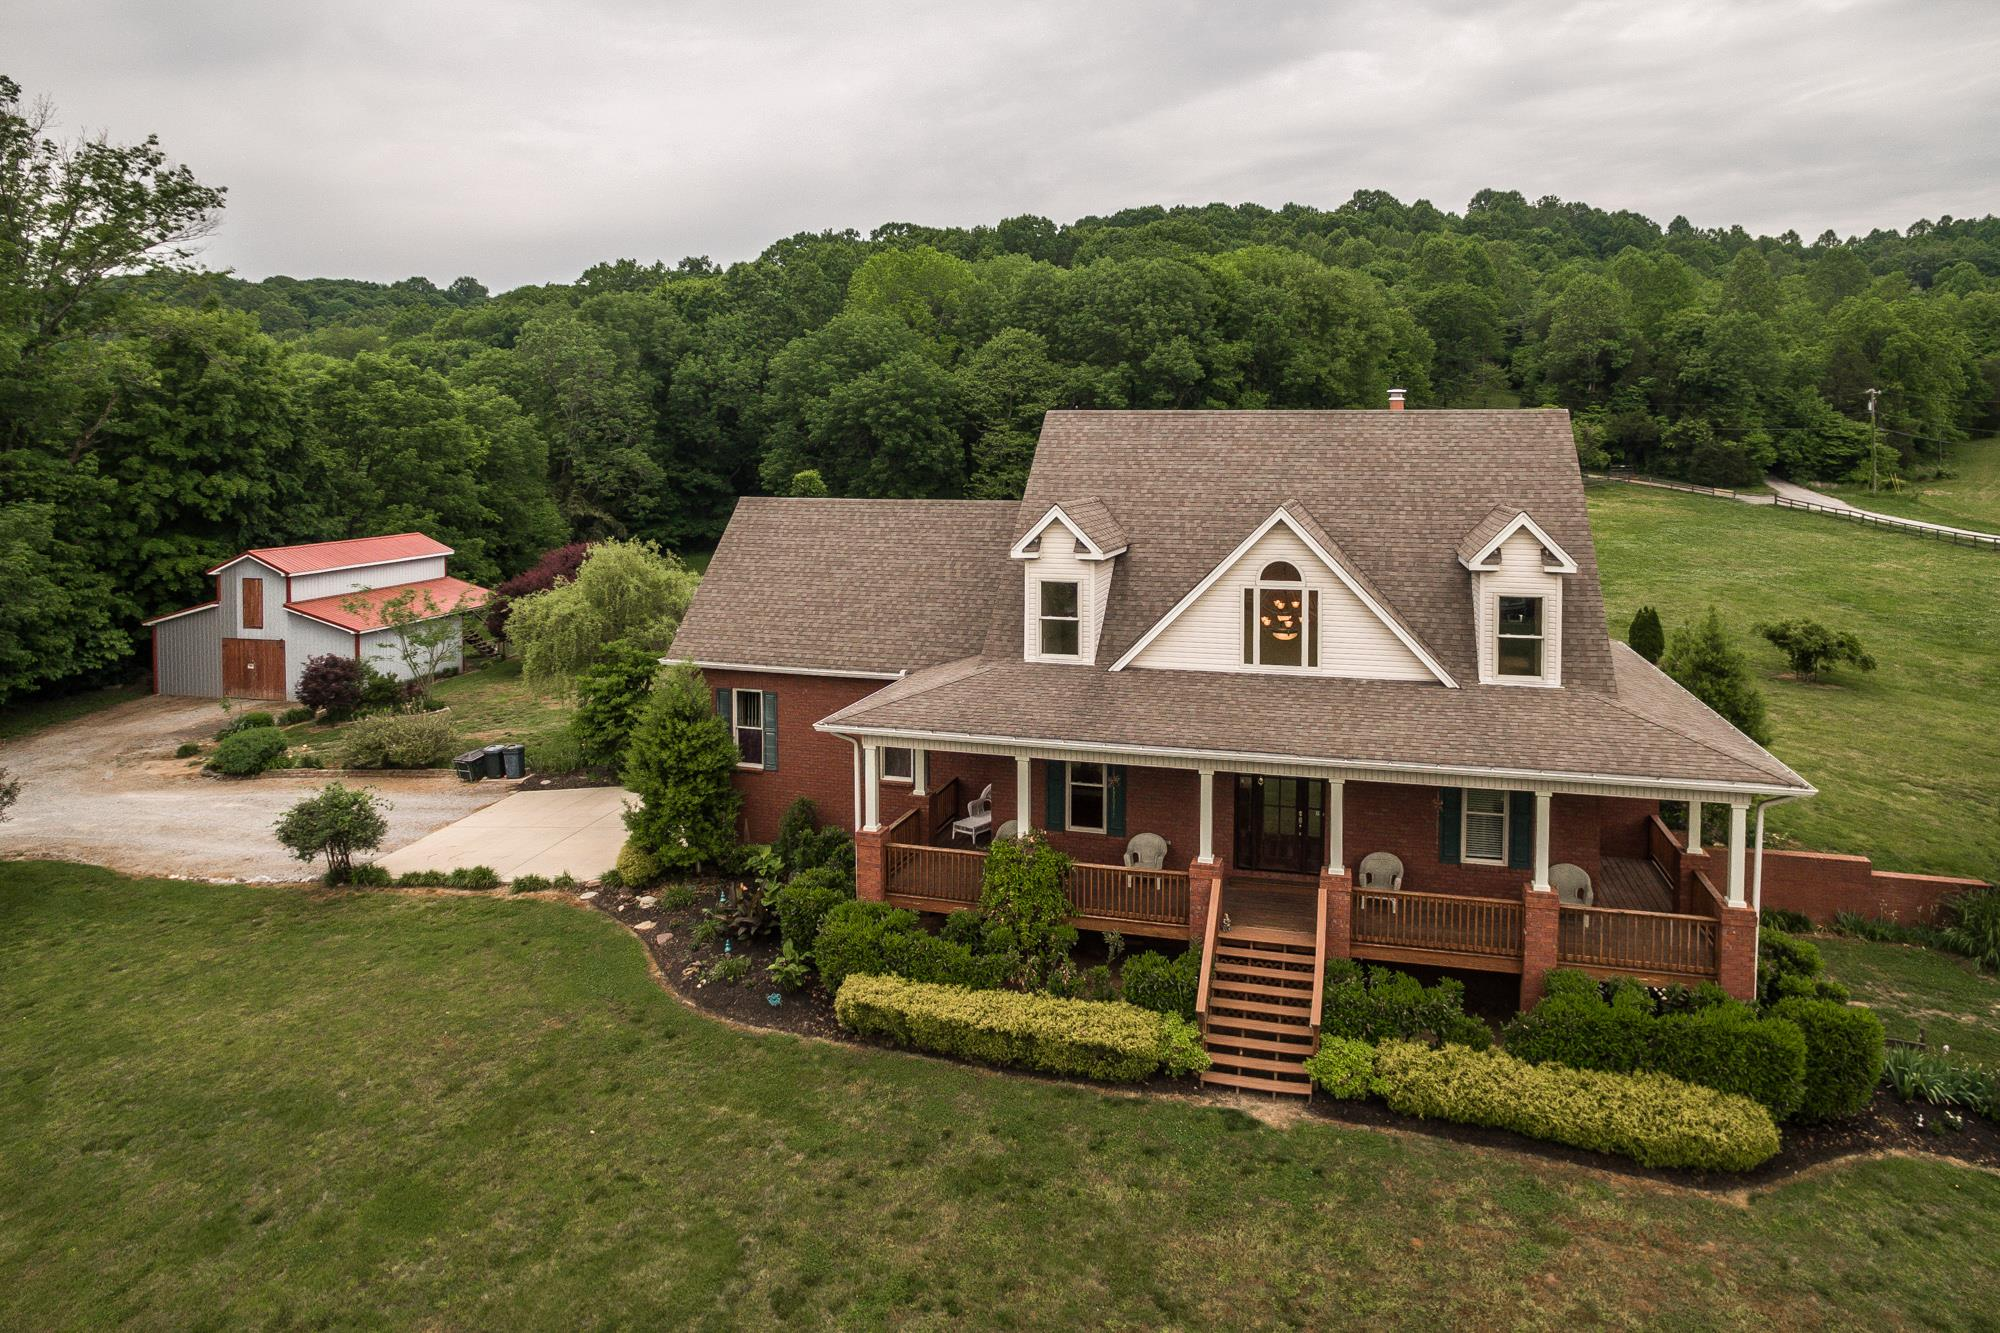 4816 Brick Church Pike, Goodlettsville in Davidson County County, TN 37072 Home for Sale